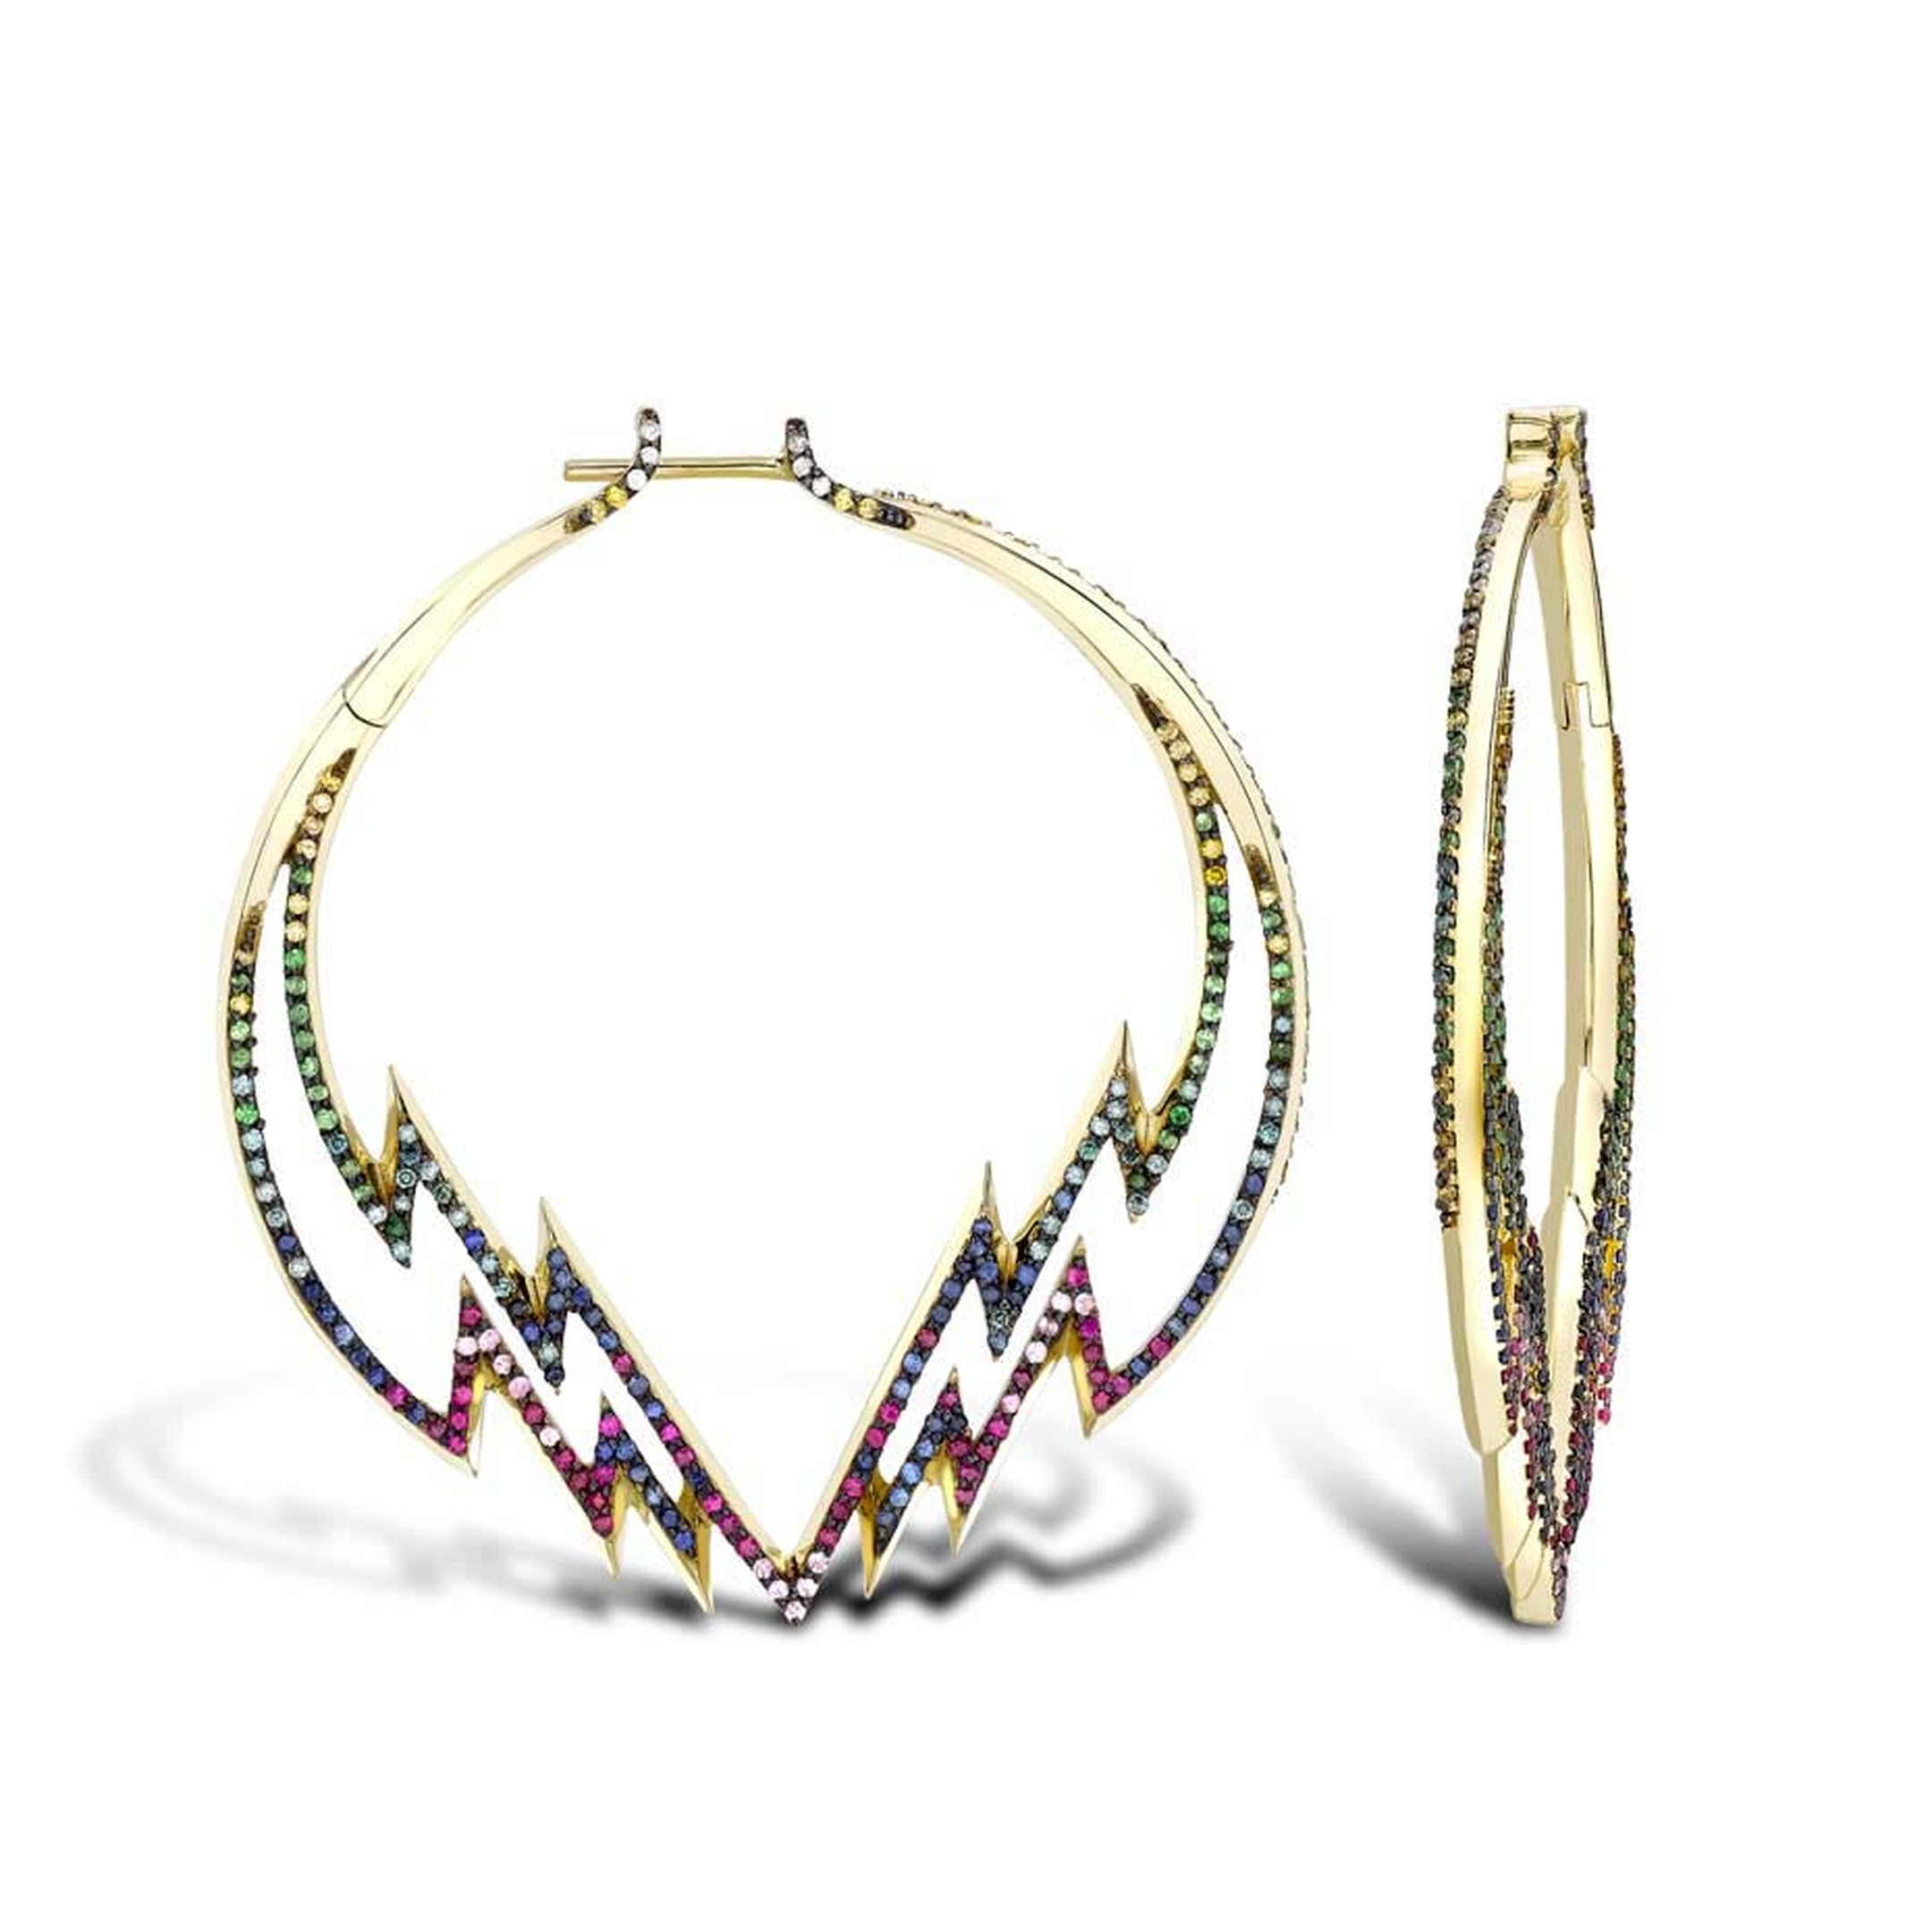 Venyx Electra Hoop earrings, from Greek designer Eugenie Niarchos' new collection, resemble a colourful flash of lighting.